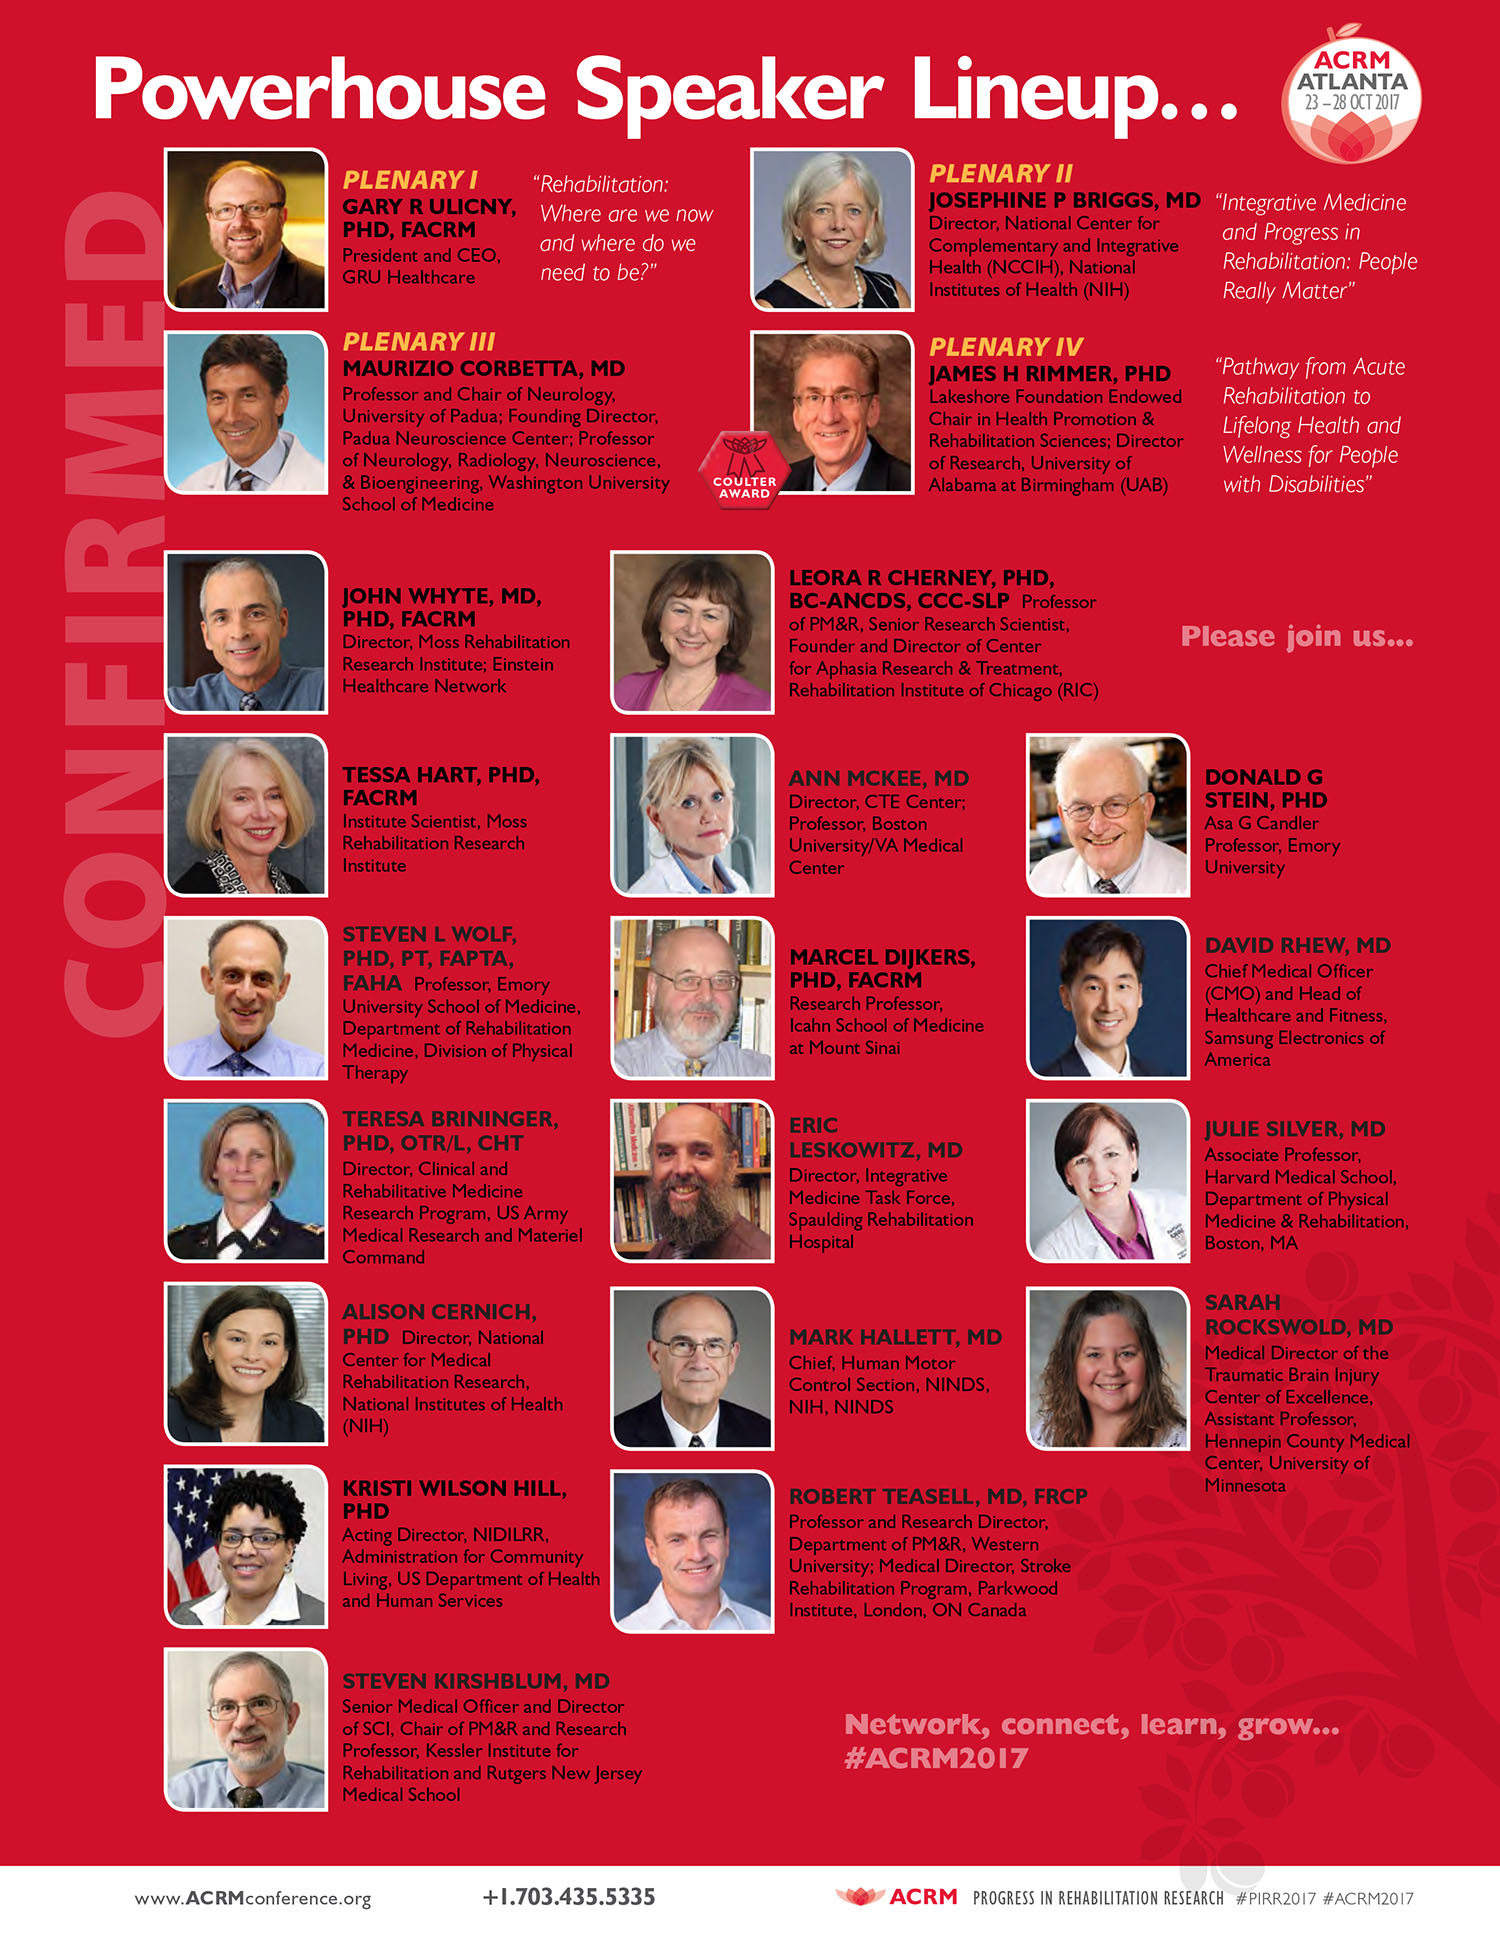 Rock Star Faculty 2017 ACRM Conference